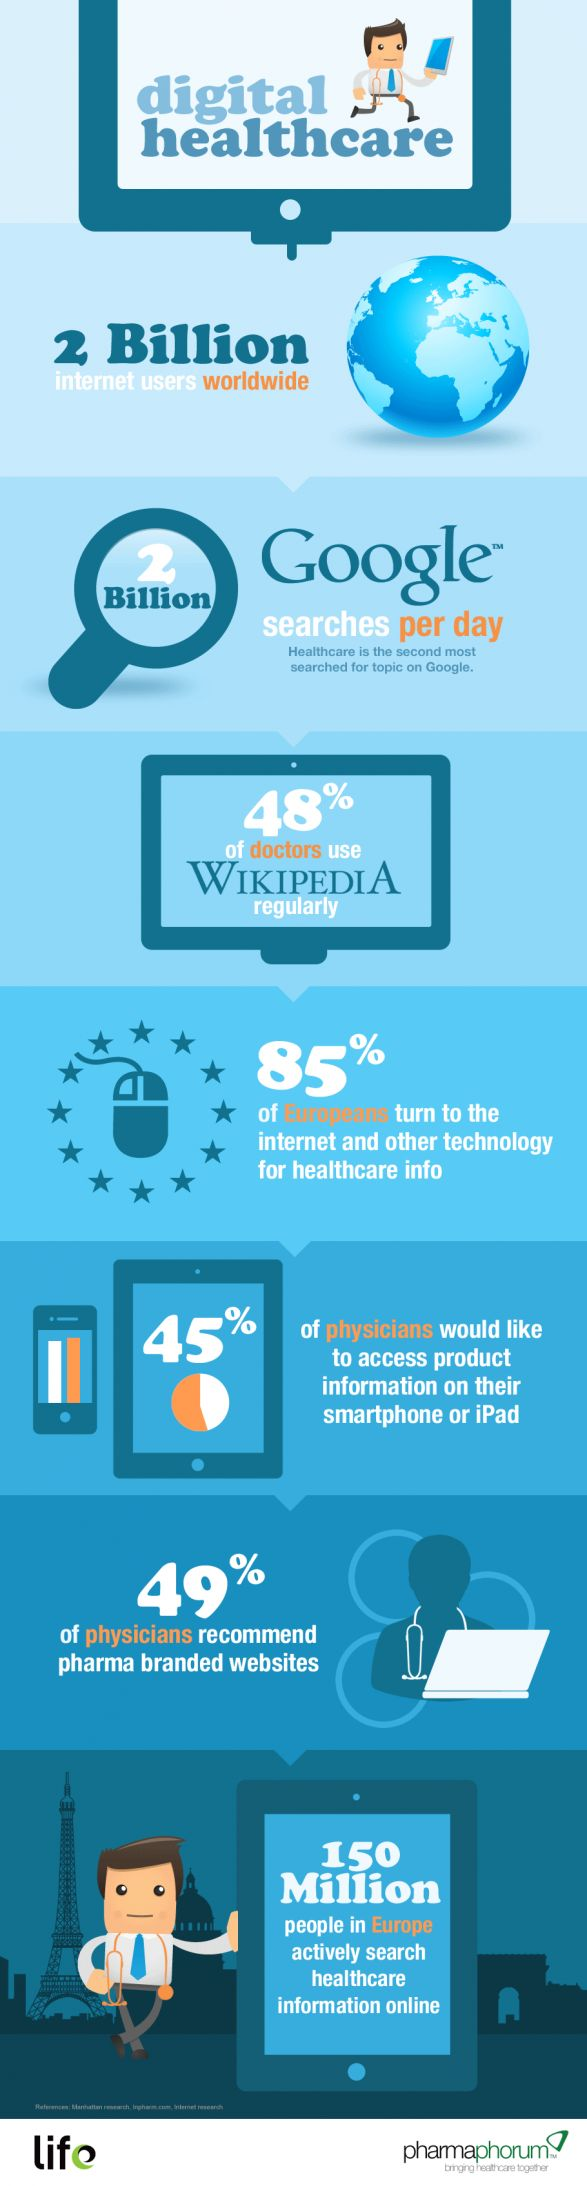 How people interact digitally in healthcare #pharma